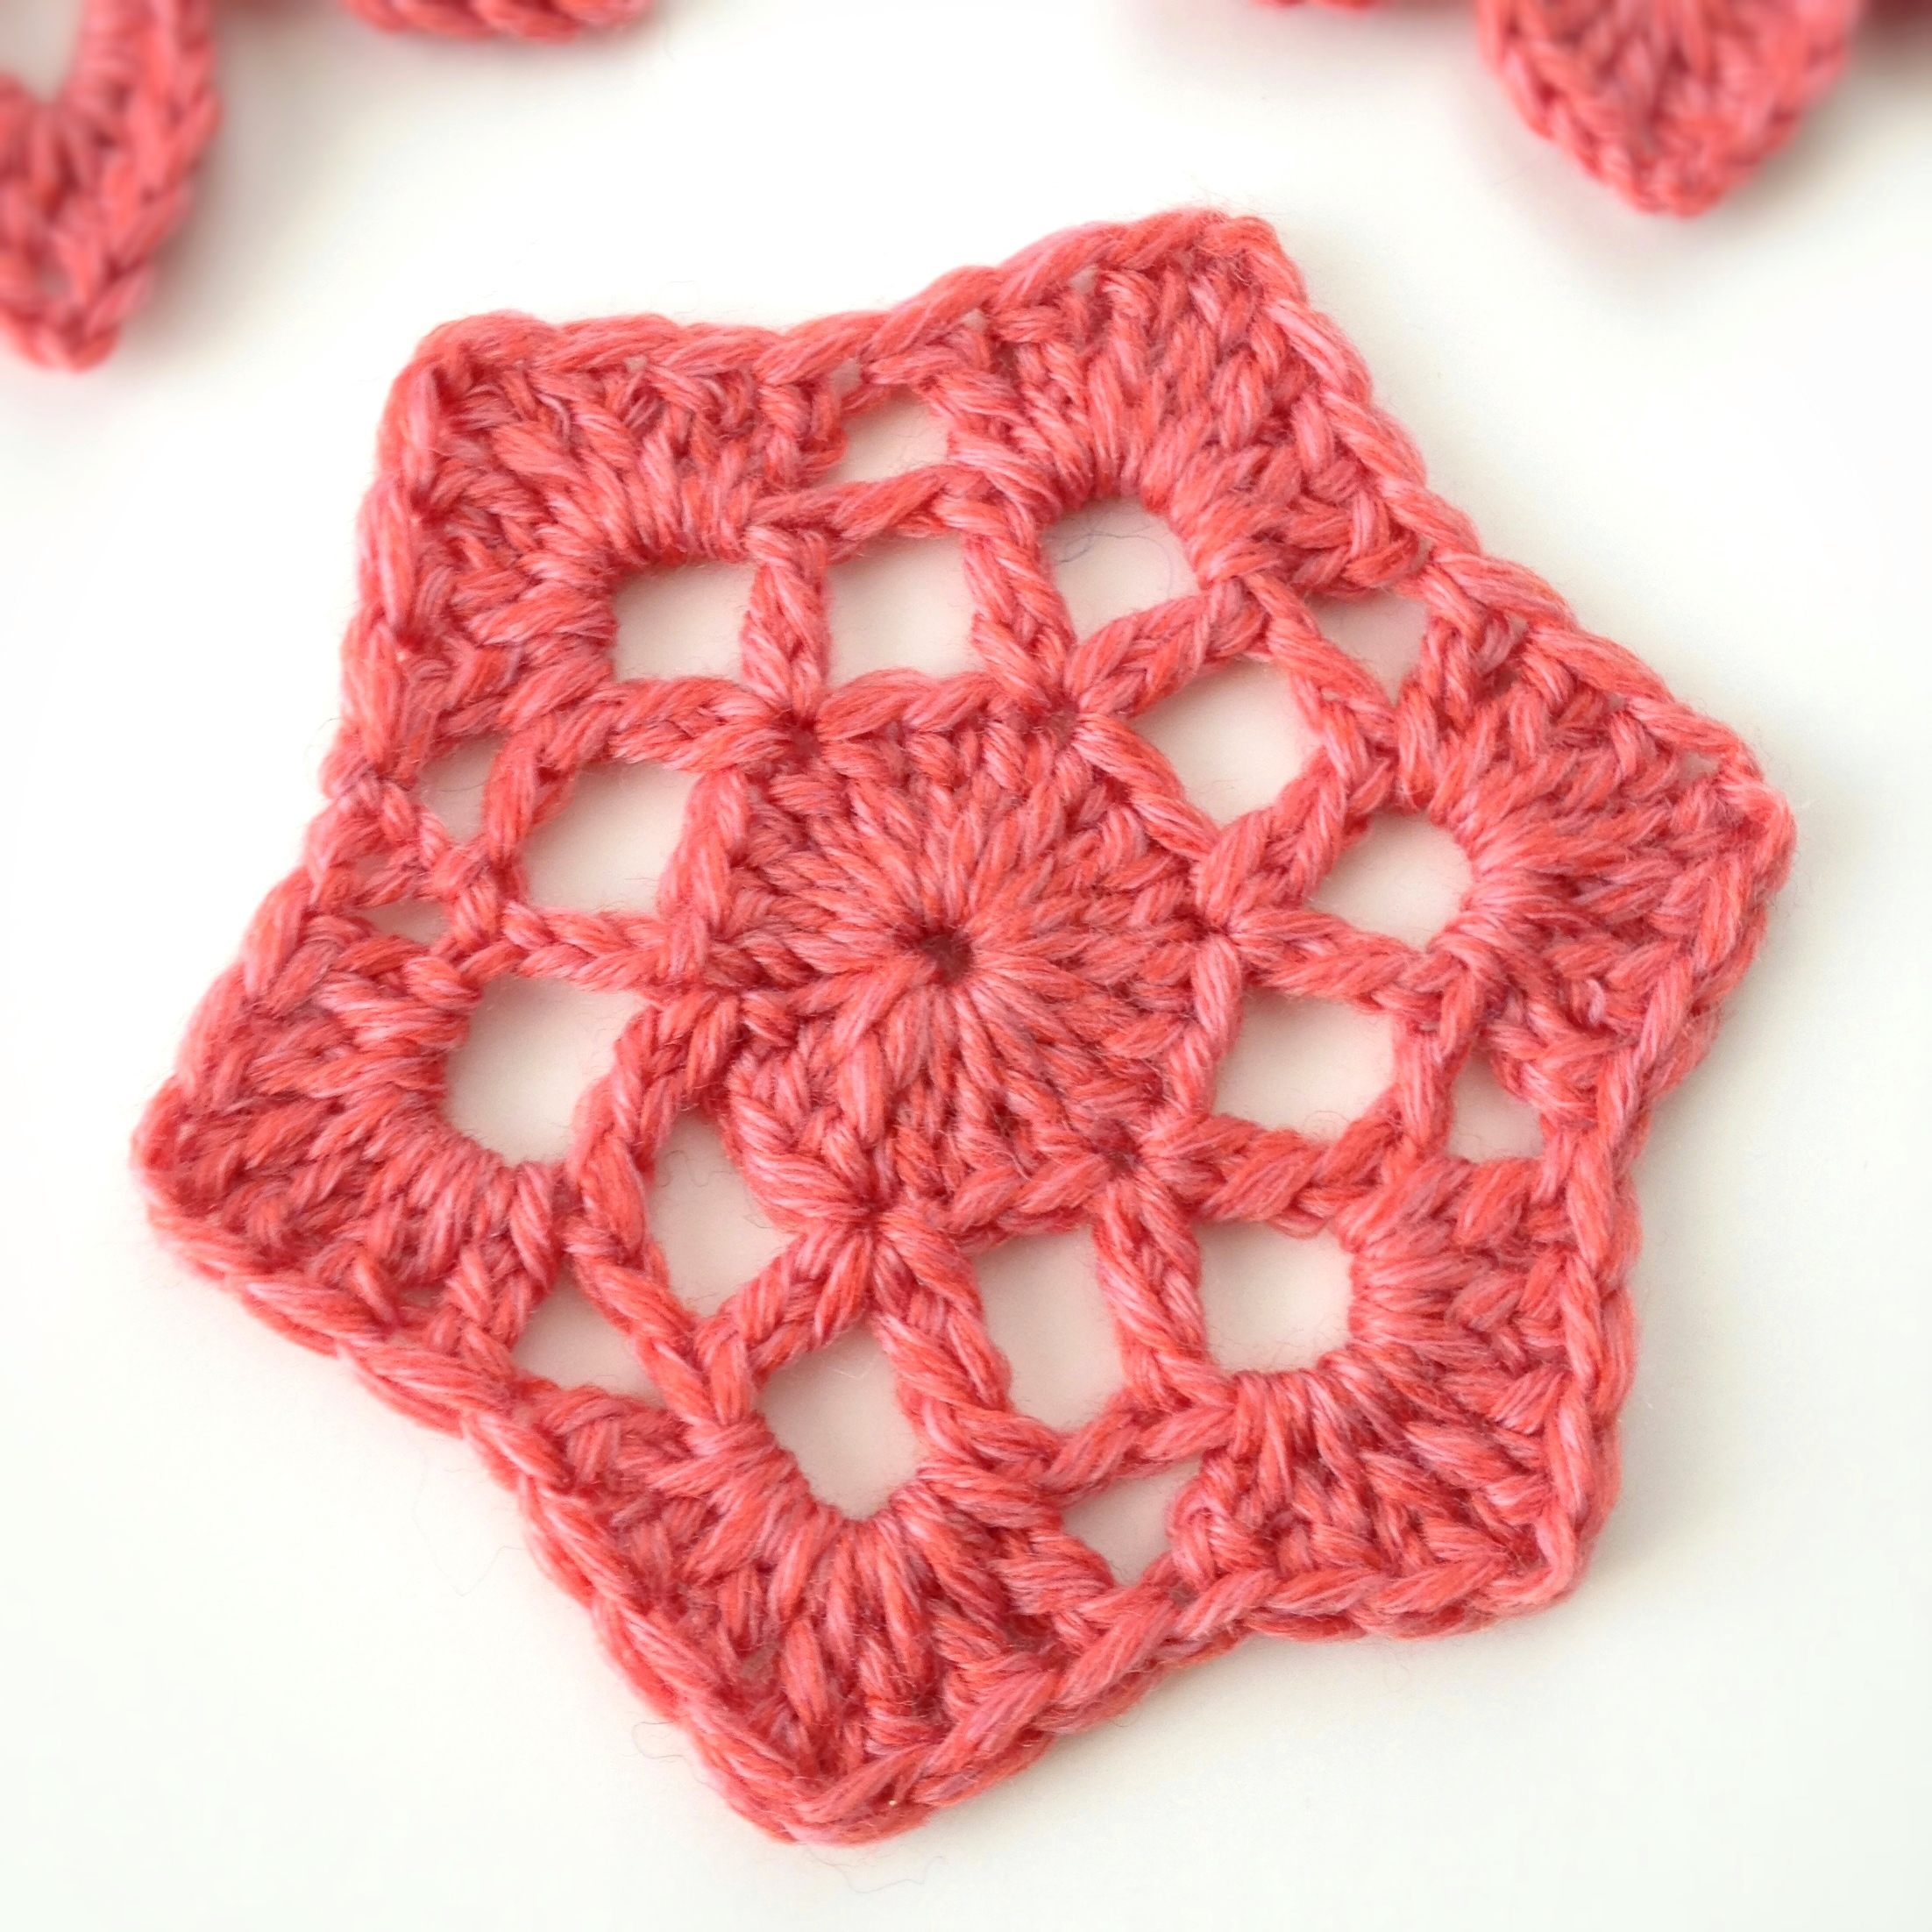 Crochet Videos : Crochet motif #53 from ?Beyond the Square Crochet Motifs?